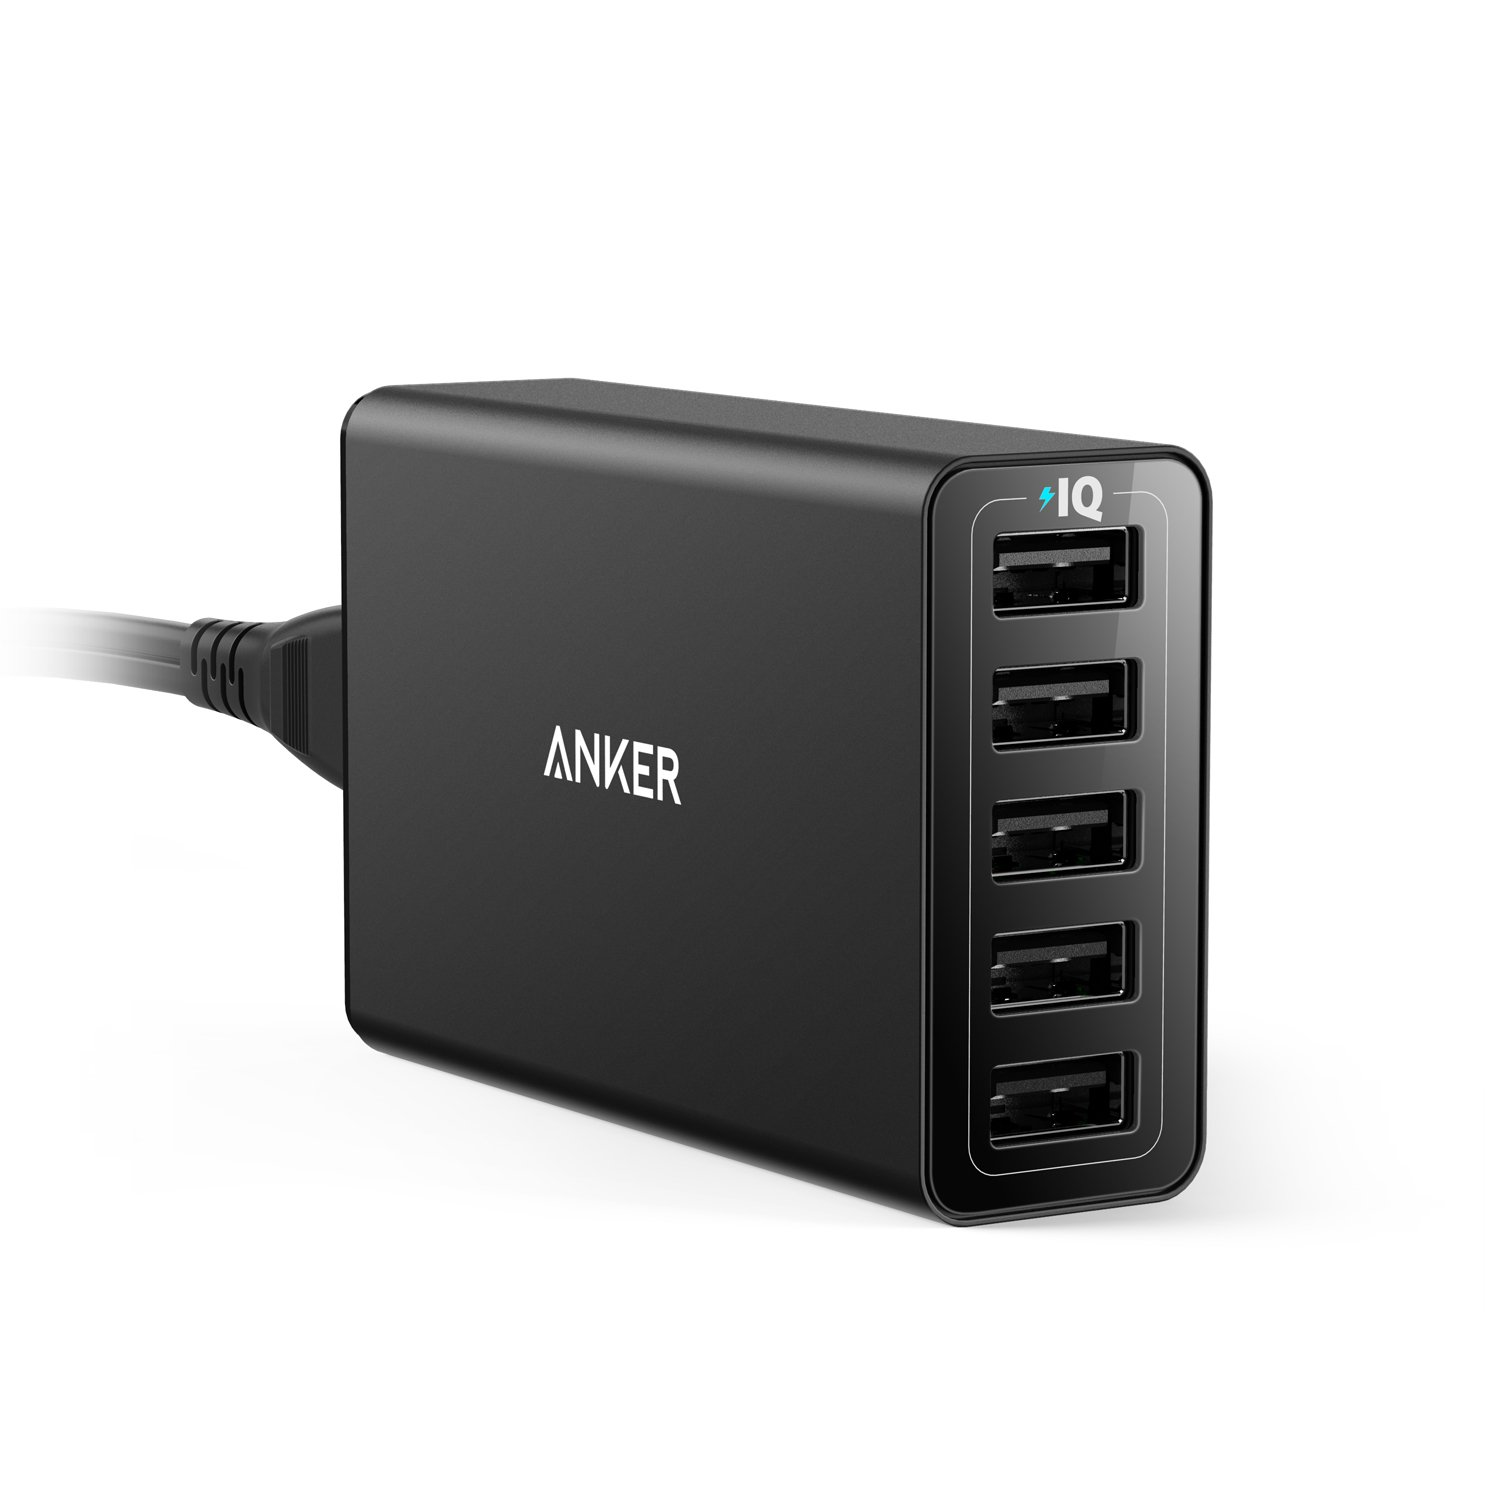 Anker 40W 5-Port USB Wall Charger, PowerPort 5 for iPhone X/8/7/6s/Plus, iPad Pro/Air 2/mini, Galaxy S7/S6/Edge/Plus, Note 5/4, LG, Nexus, HTC and More